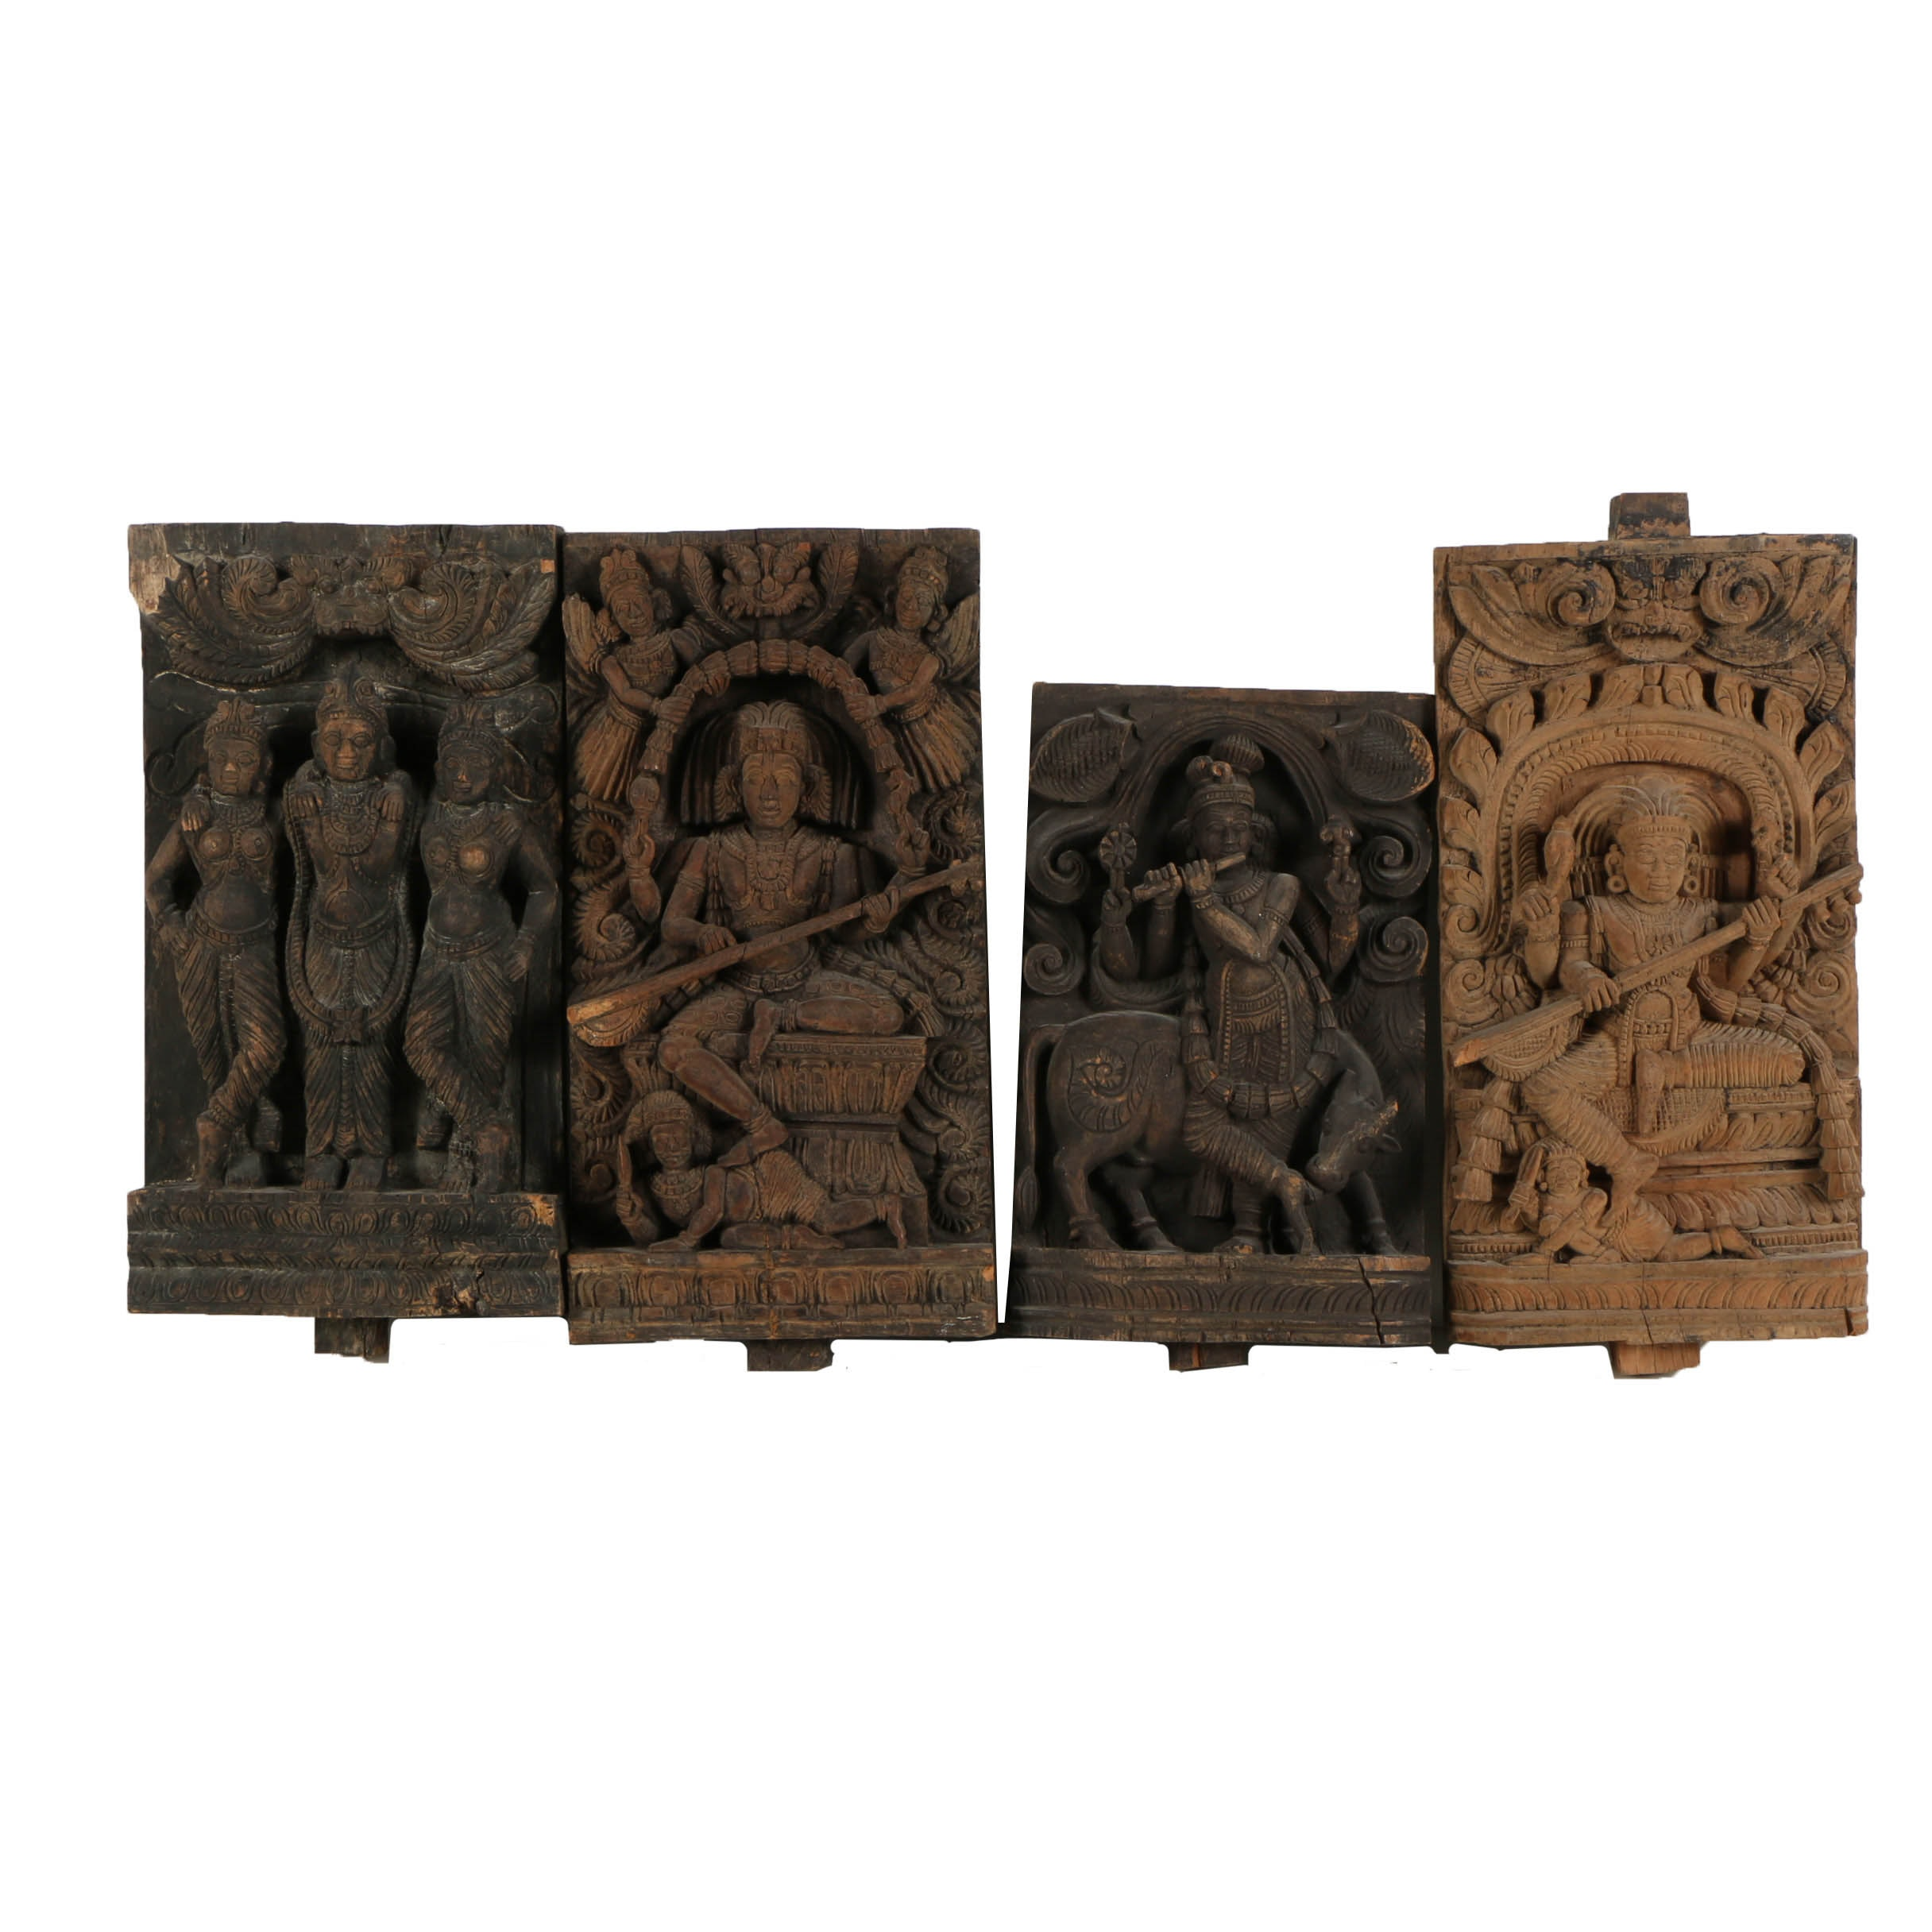 South Indian Hindu Wooden Relief Carvings